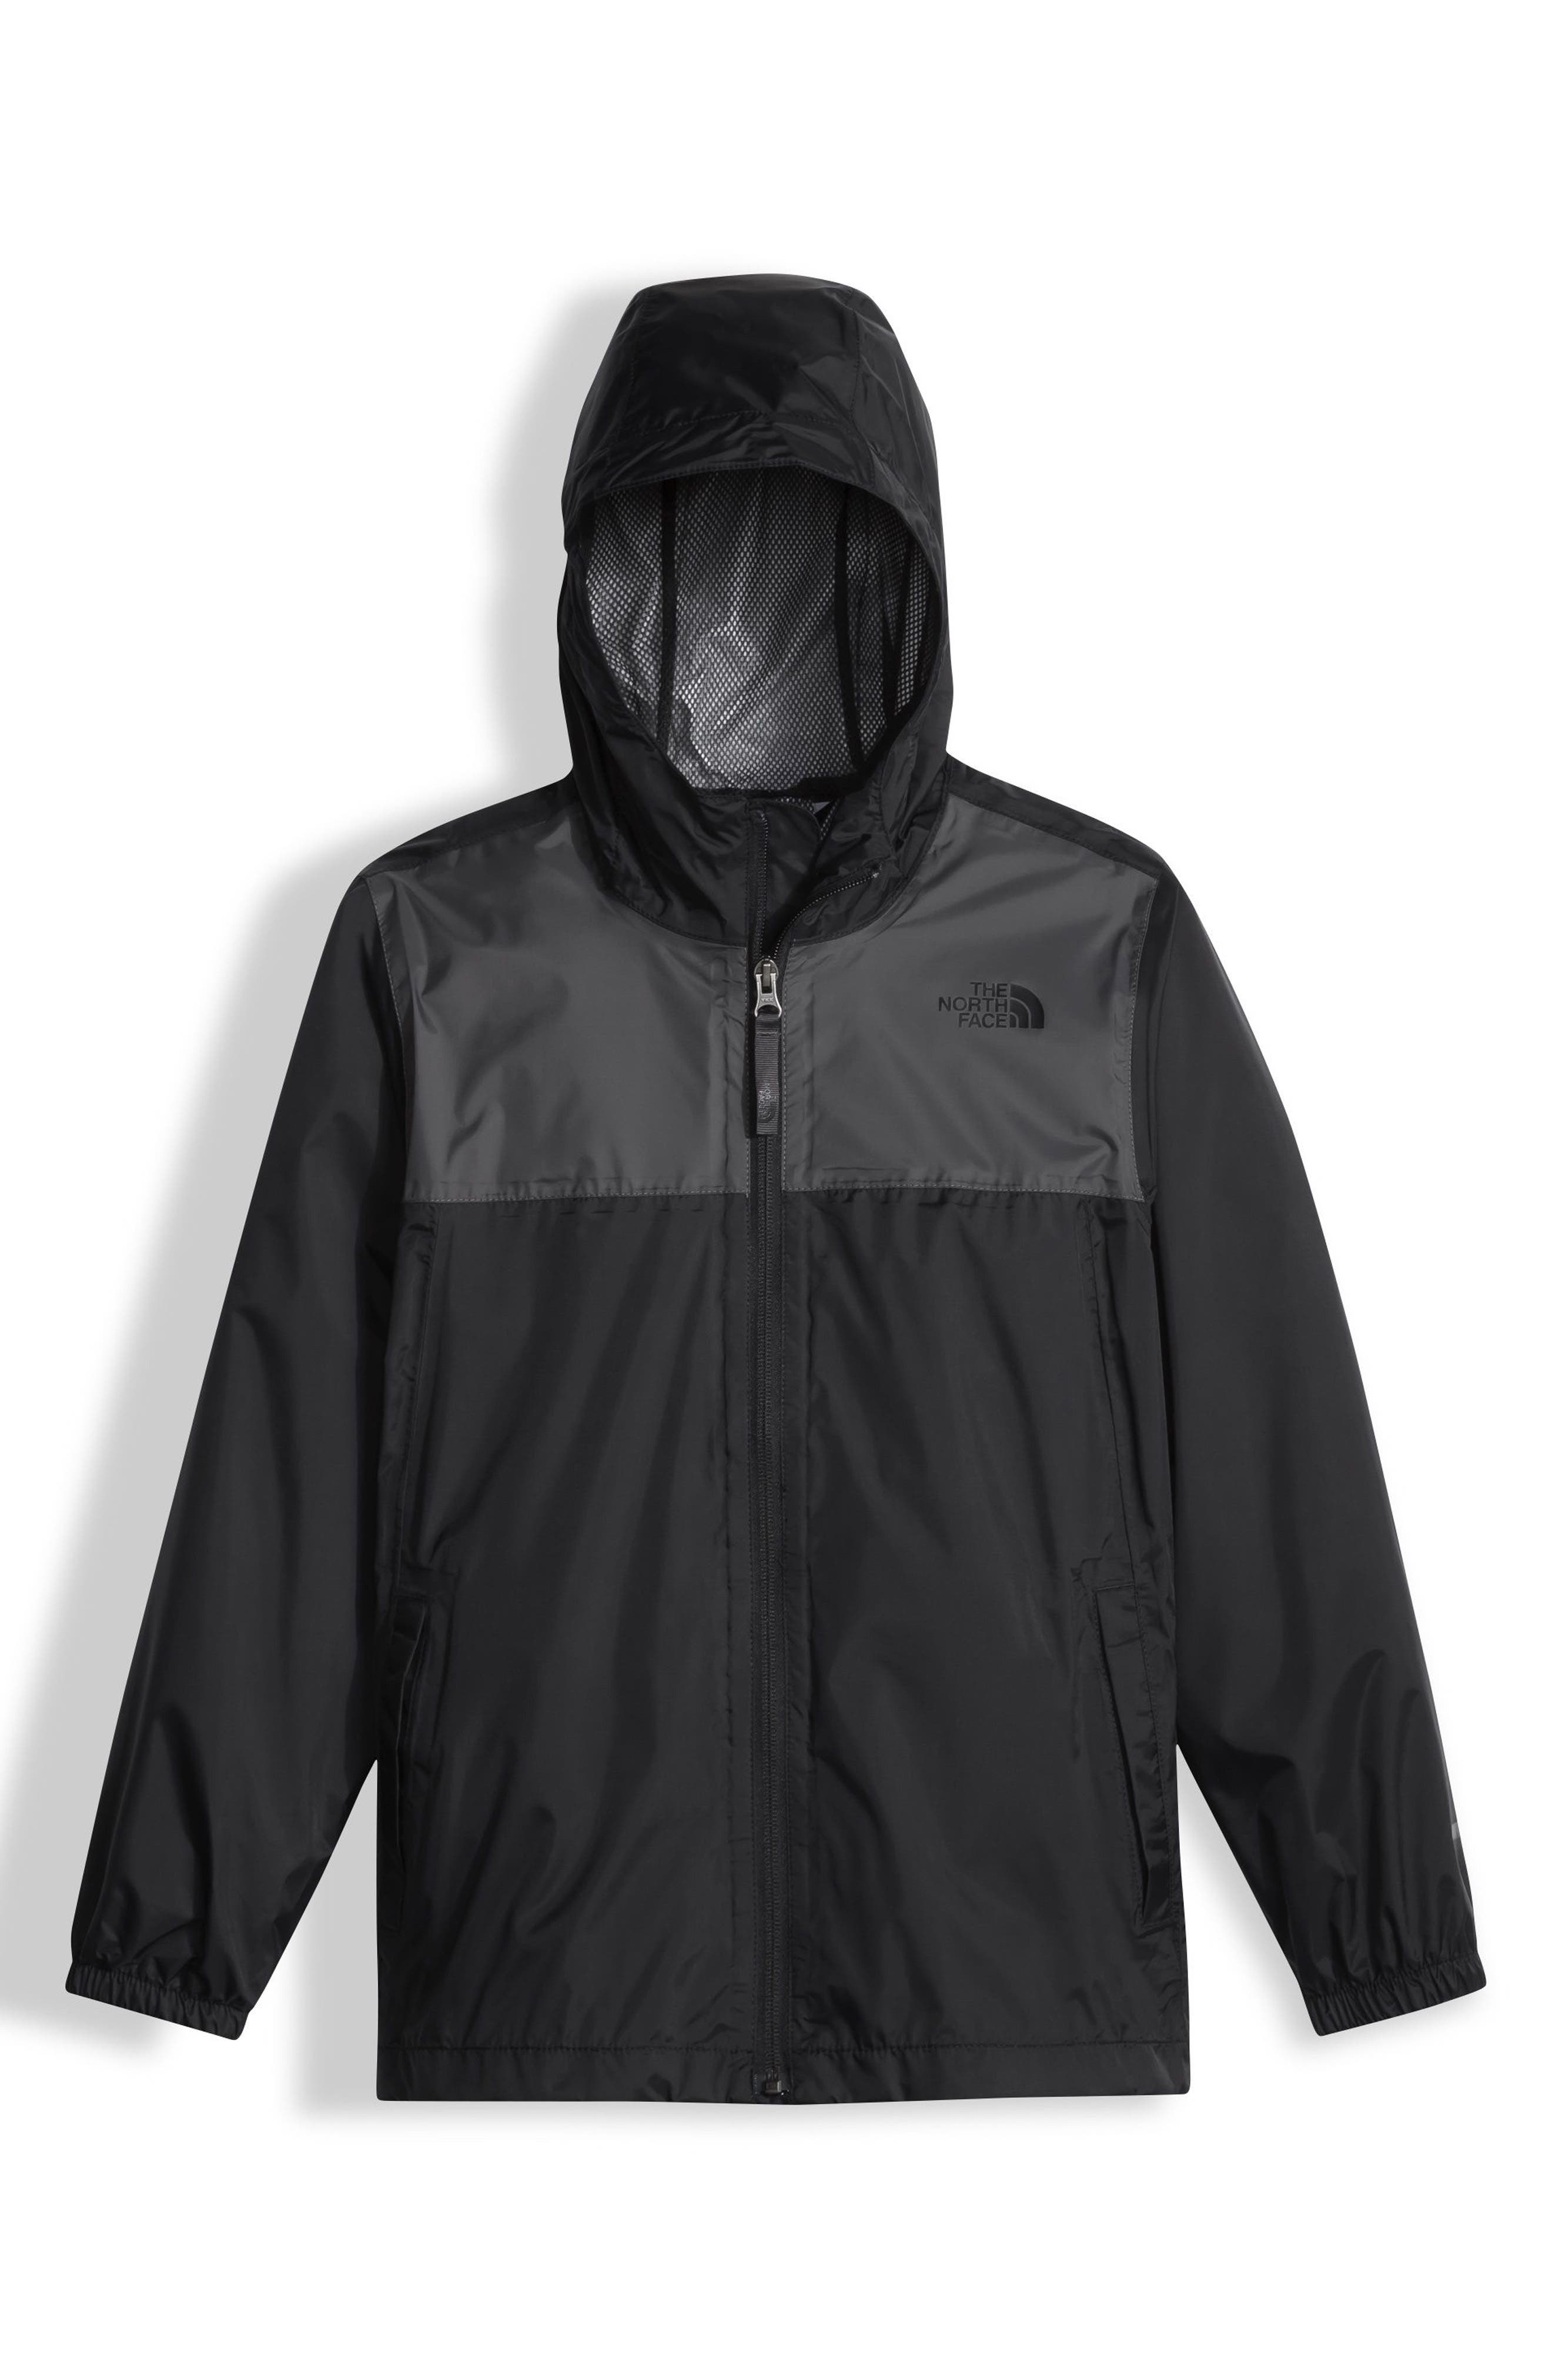 Zipline Hooded Rain Jacket,                         Main,                         color, 001